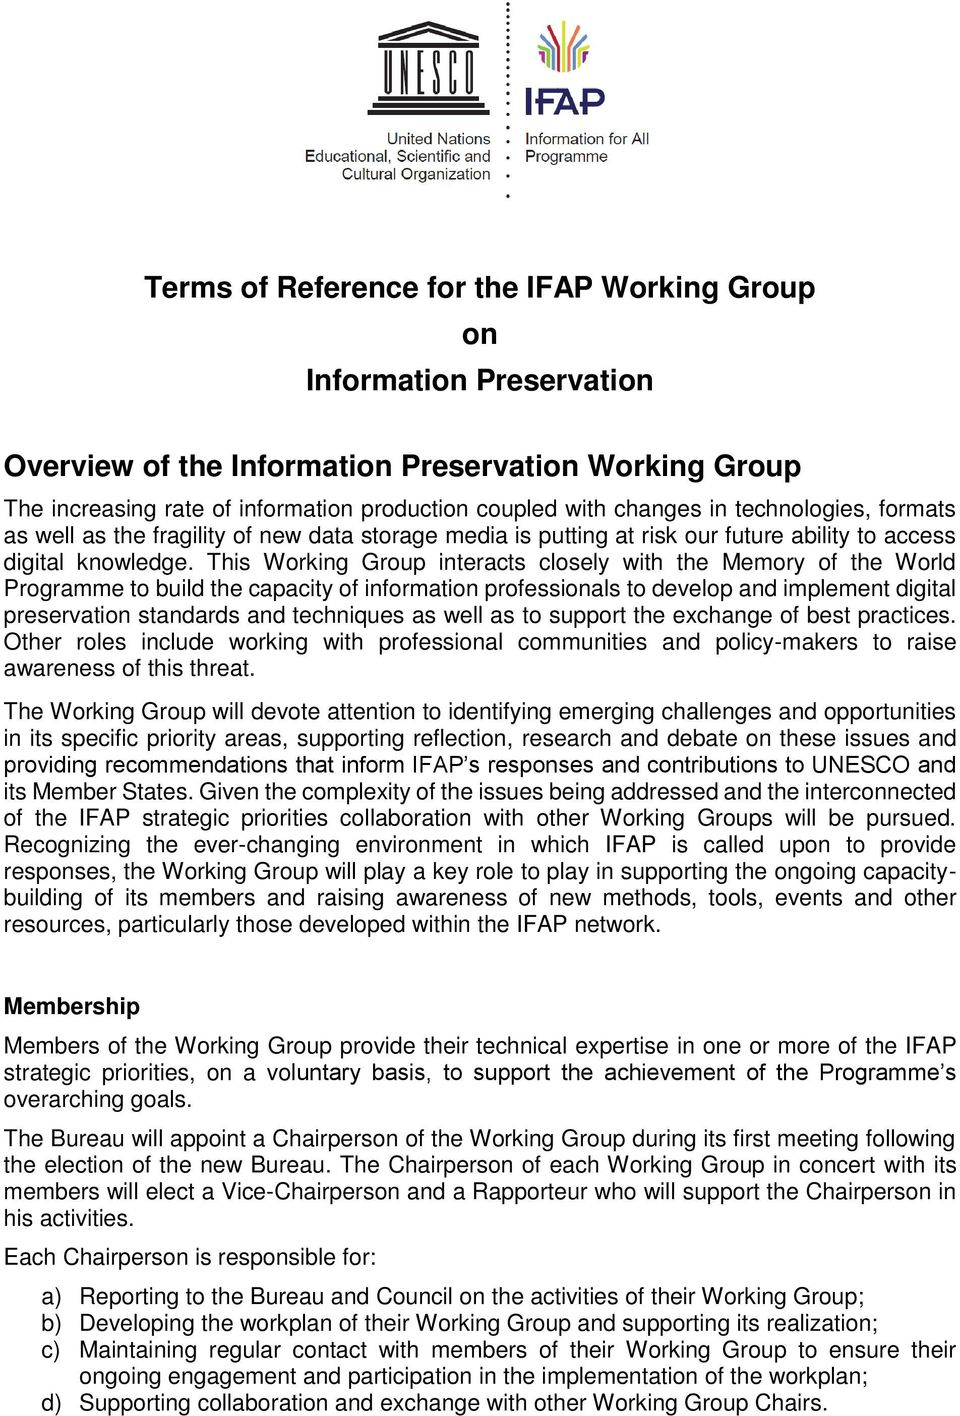 This Working Group interacts closely with the Memory of the World Programme to build the capacity of information professionals to develop and implement digital preservation standards and techniques